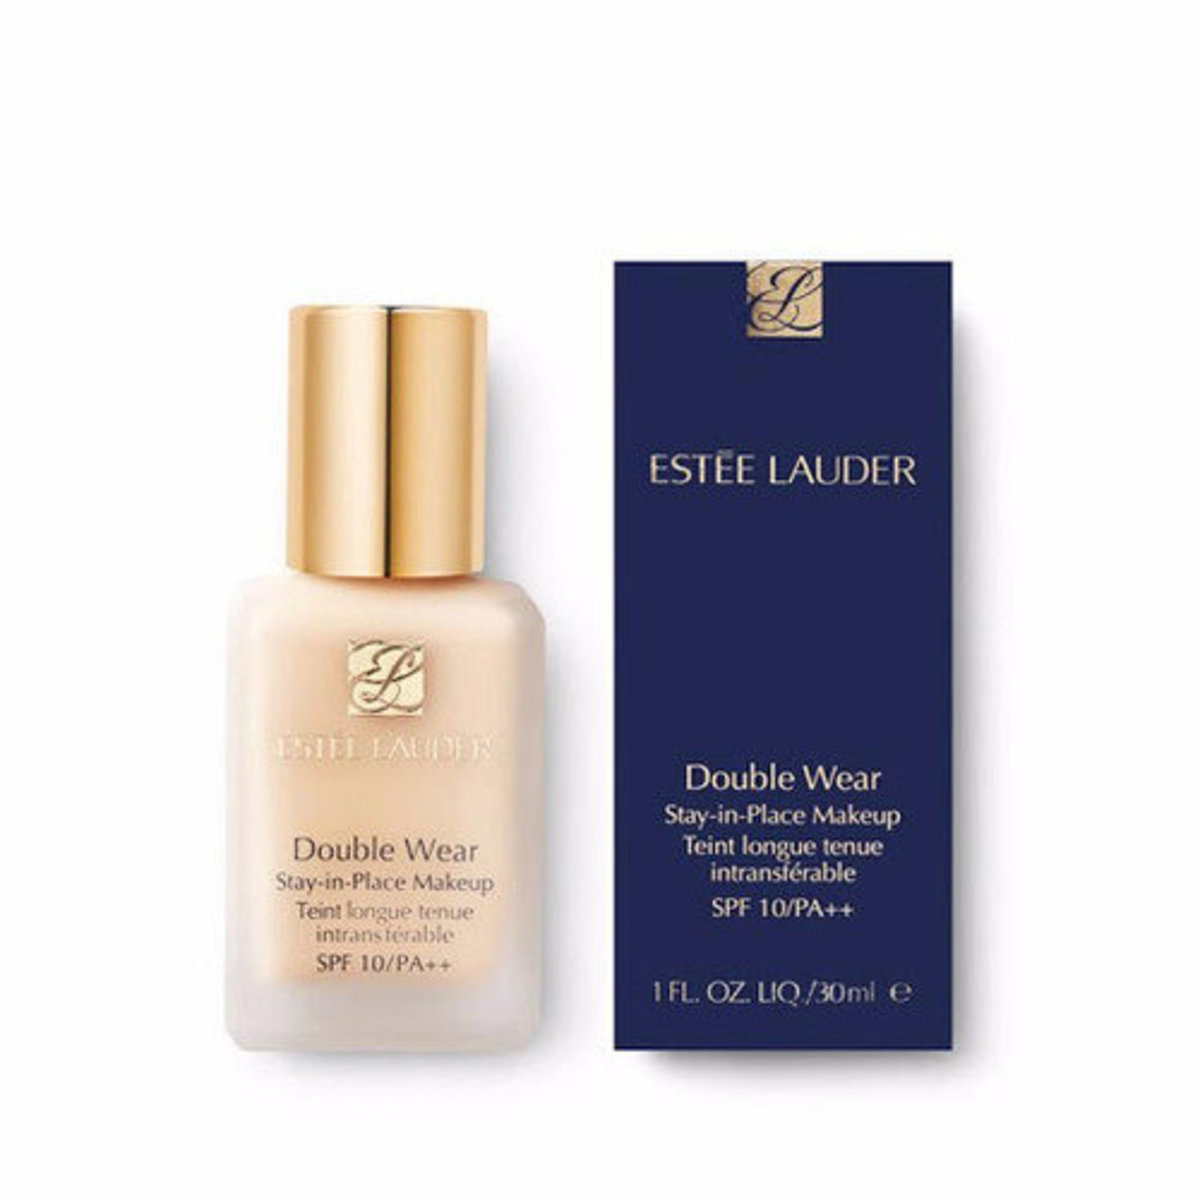 Double Wear Makeup Foundations SPF10 #1C1 30ml (Parallel Import)